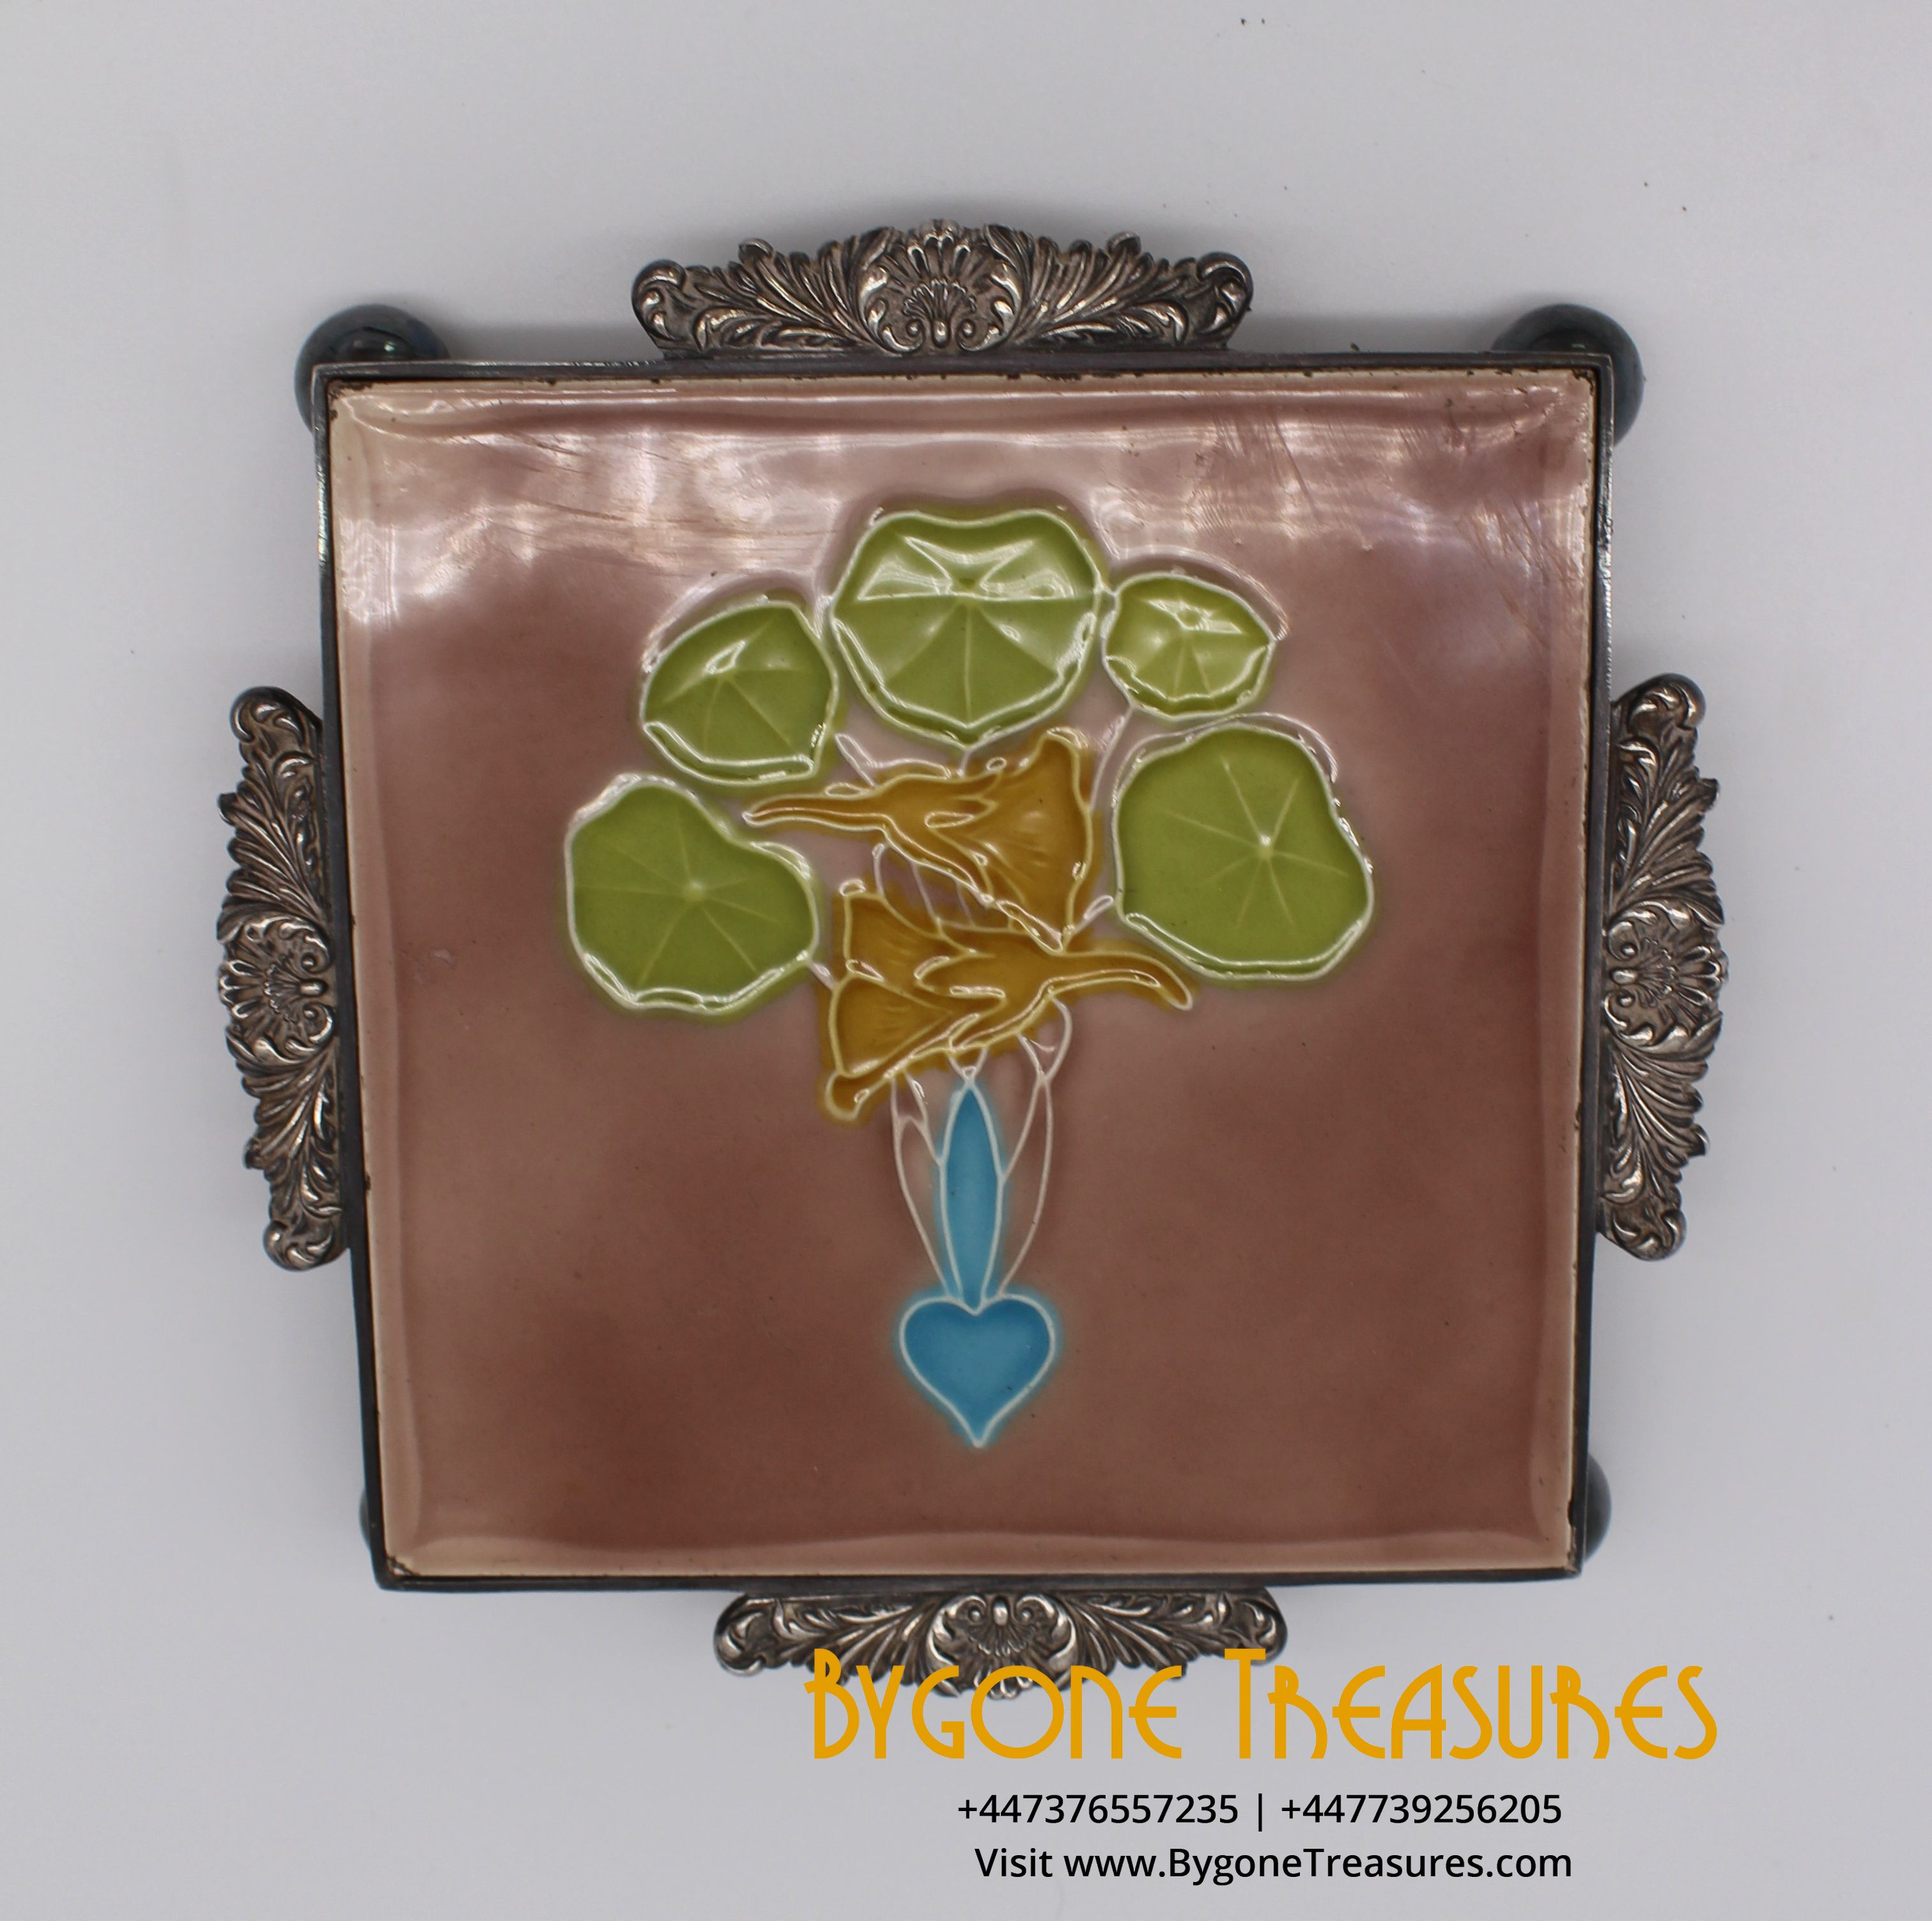 MINTON HOLLINS AND CO ART NOUVEAU VICTORIAN TILE IN CUSTOM MADE SILVER PLATE STAND (2)